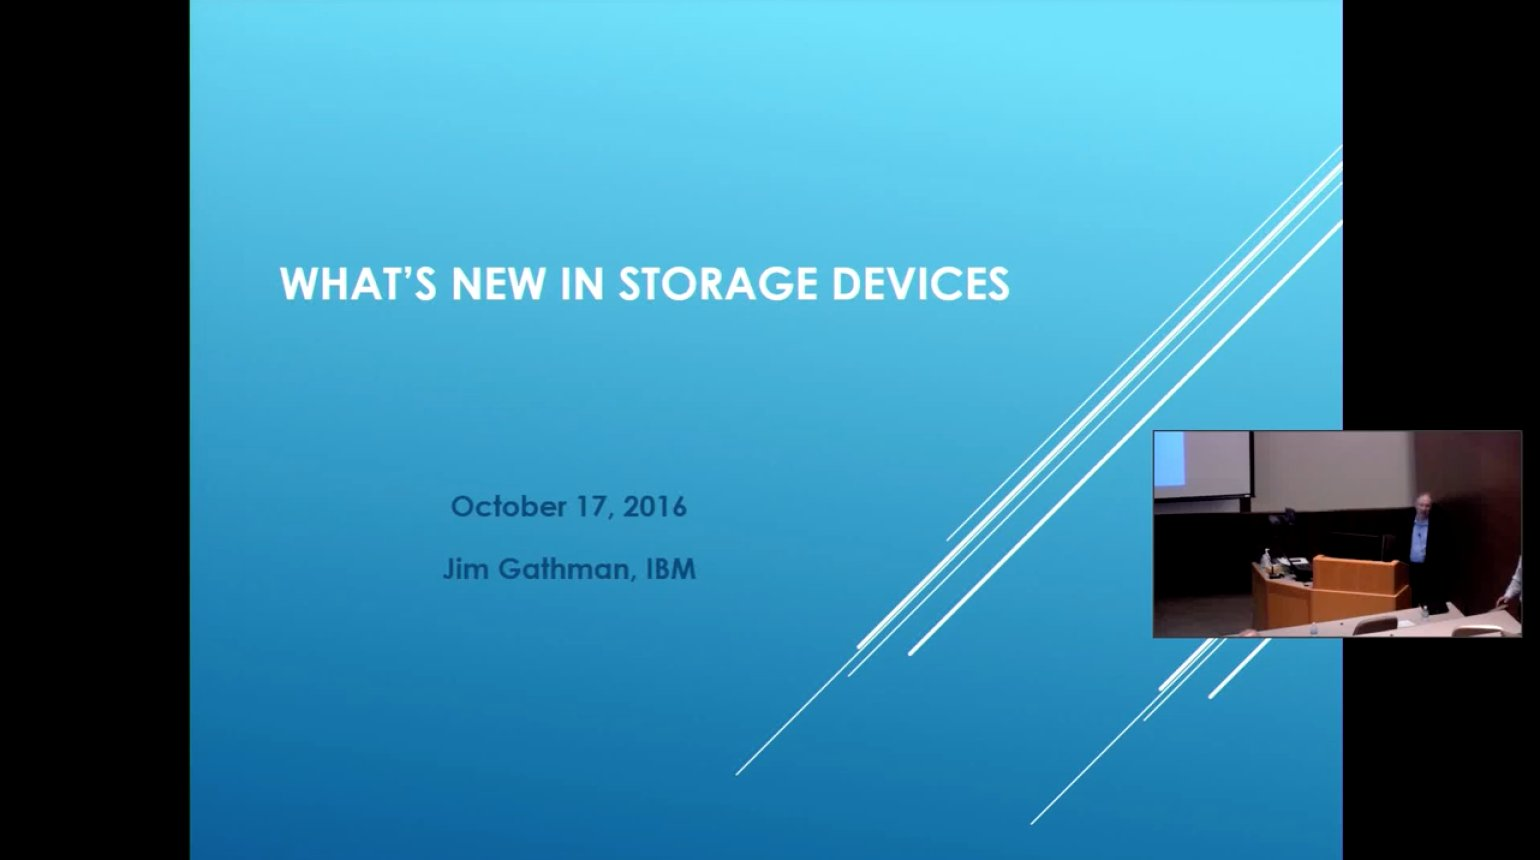 What's New in Storage Devices - Jim Gathman from IBM